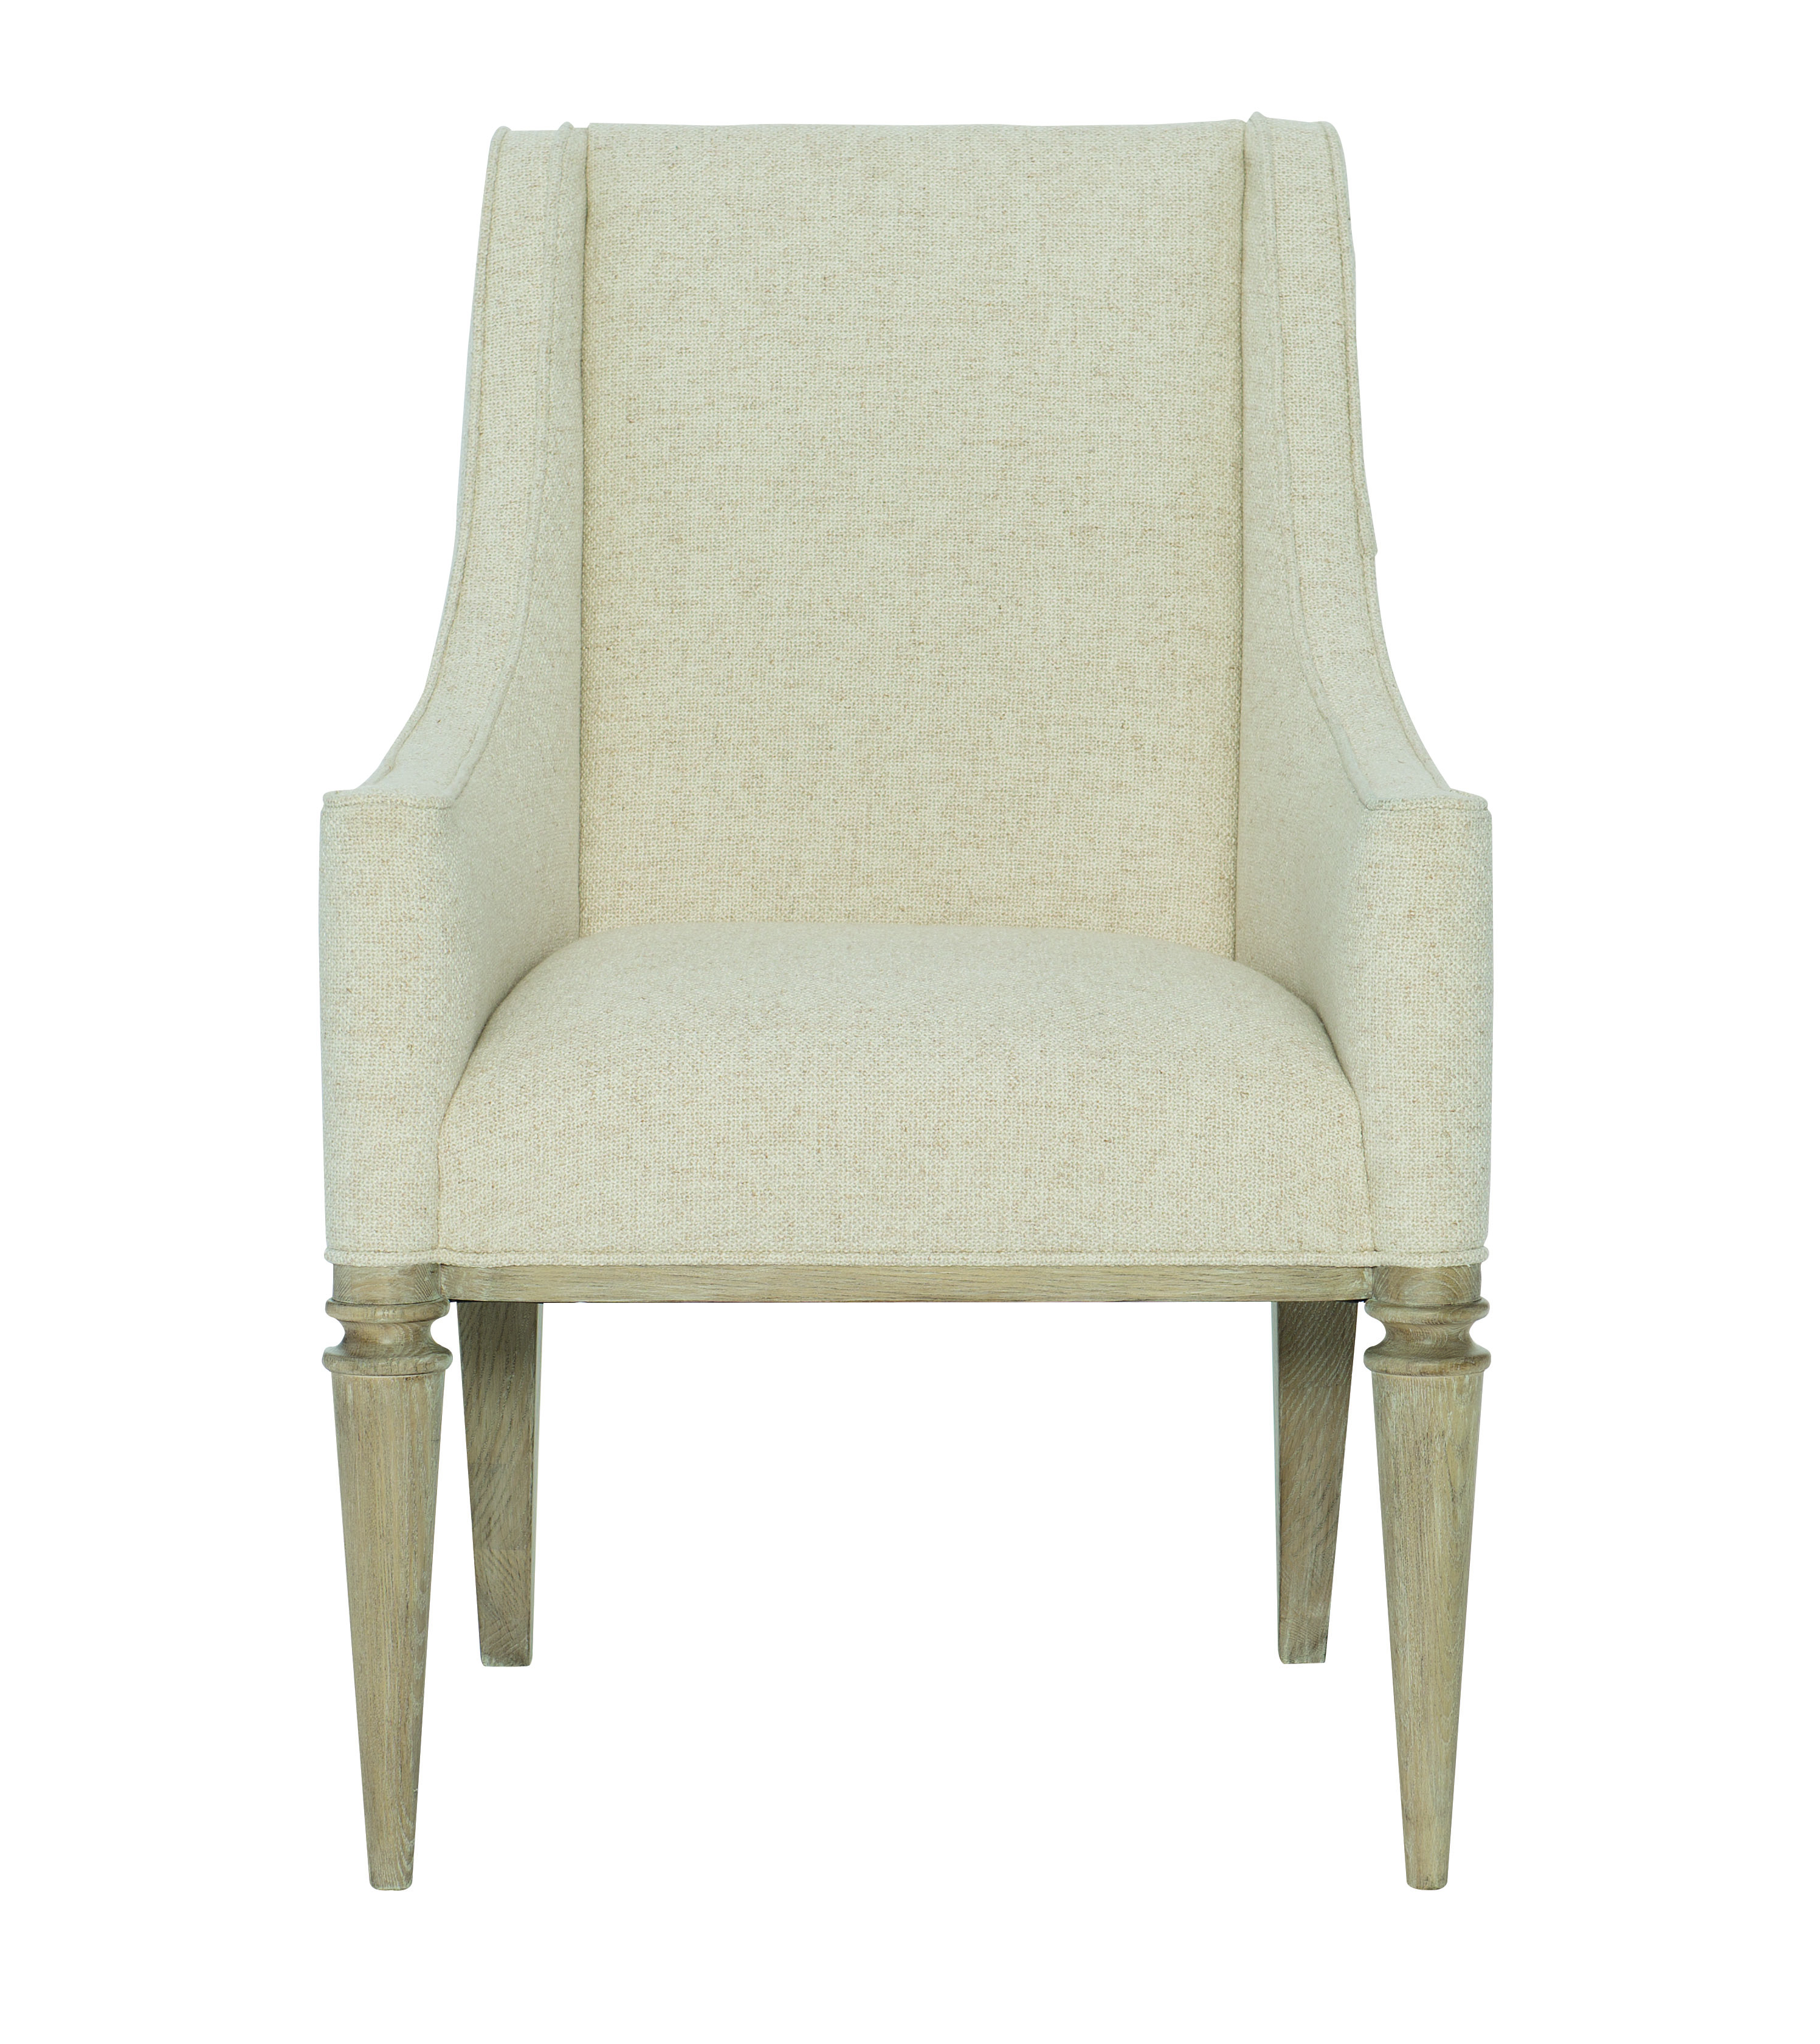 Bernhardt Santa Barbara Collection dining chair